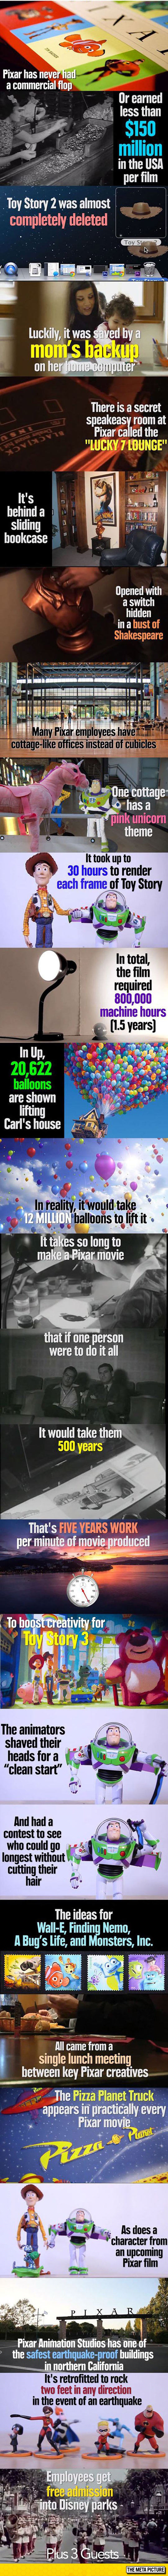 Pixar Facts You Probably Didn